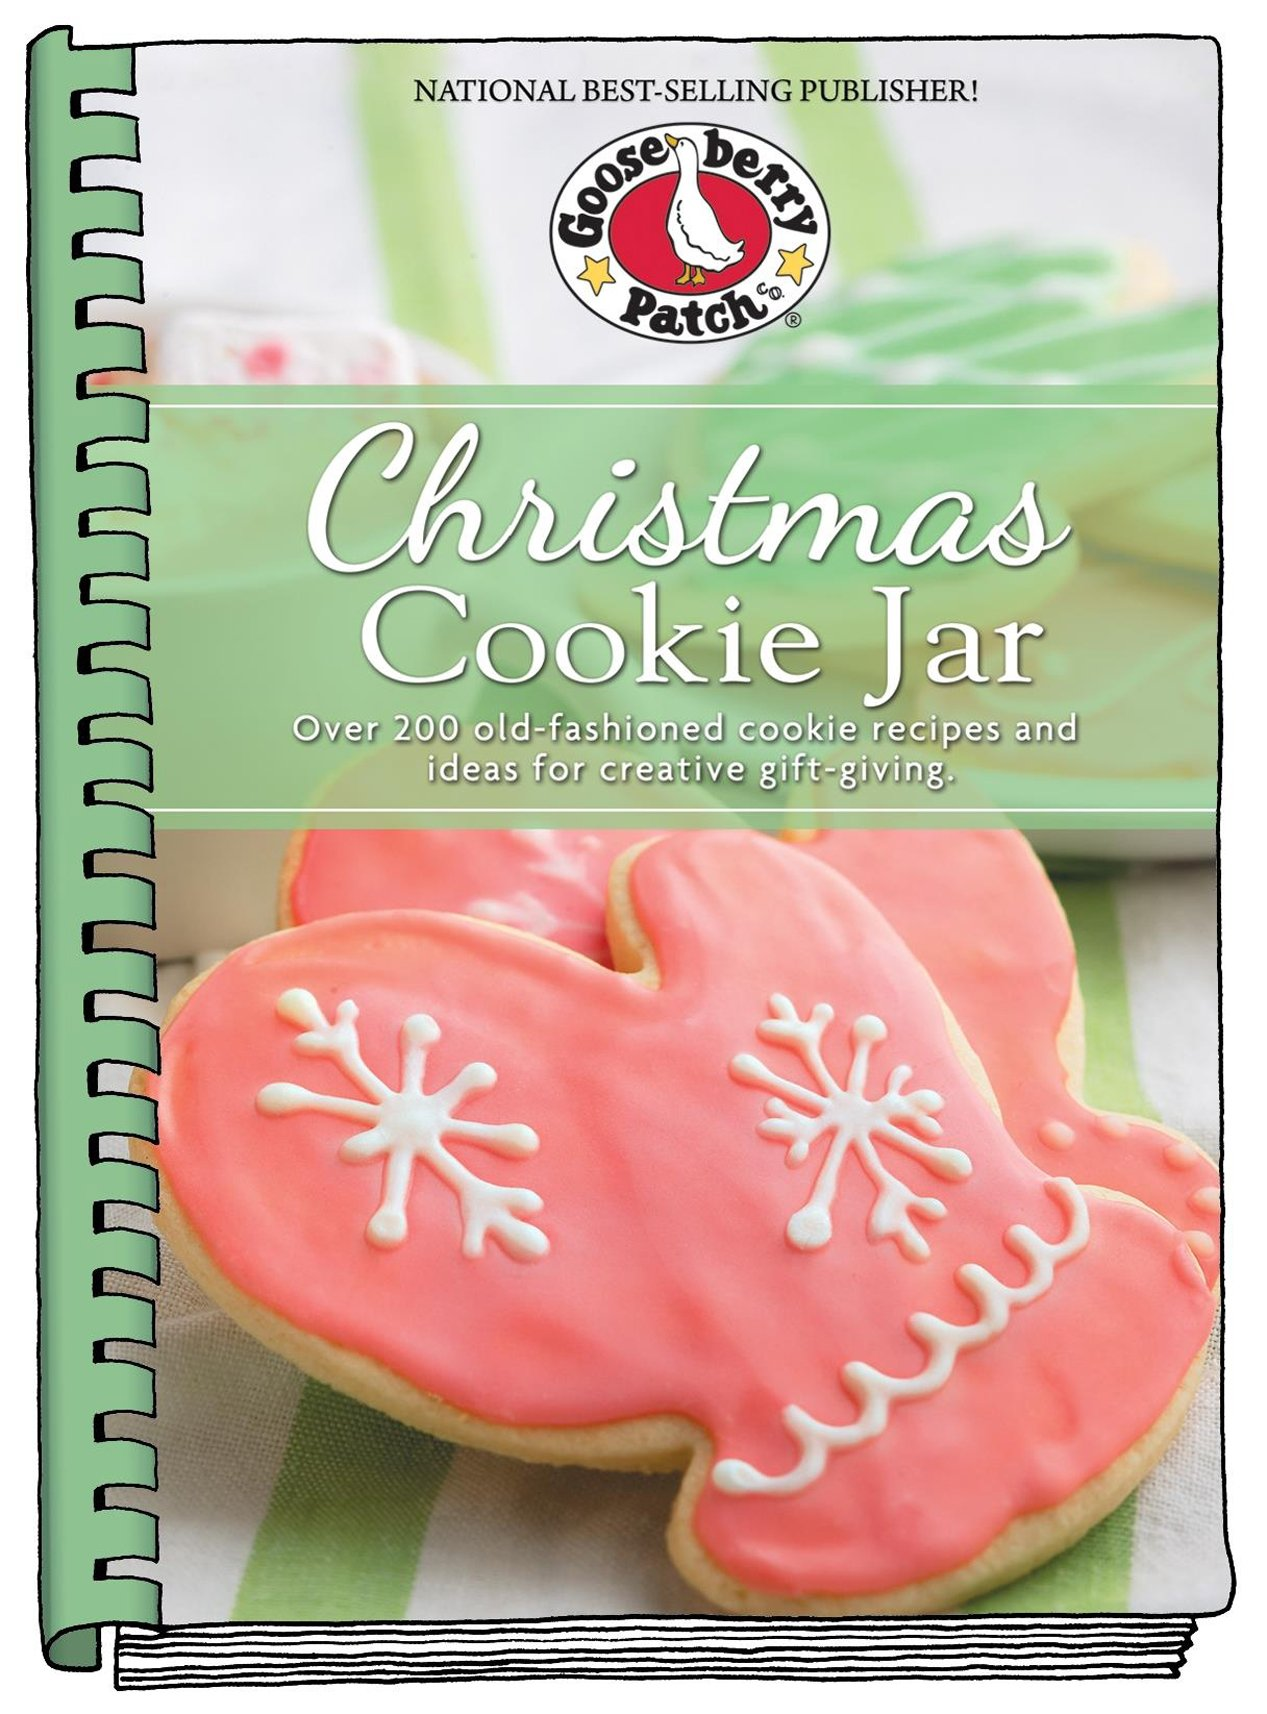 Christmas Cookie Jar: Over 200 Old-Fashioned Cookie Recipes and ...